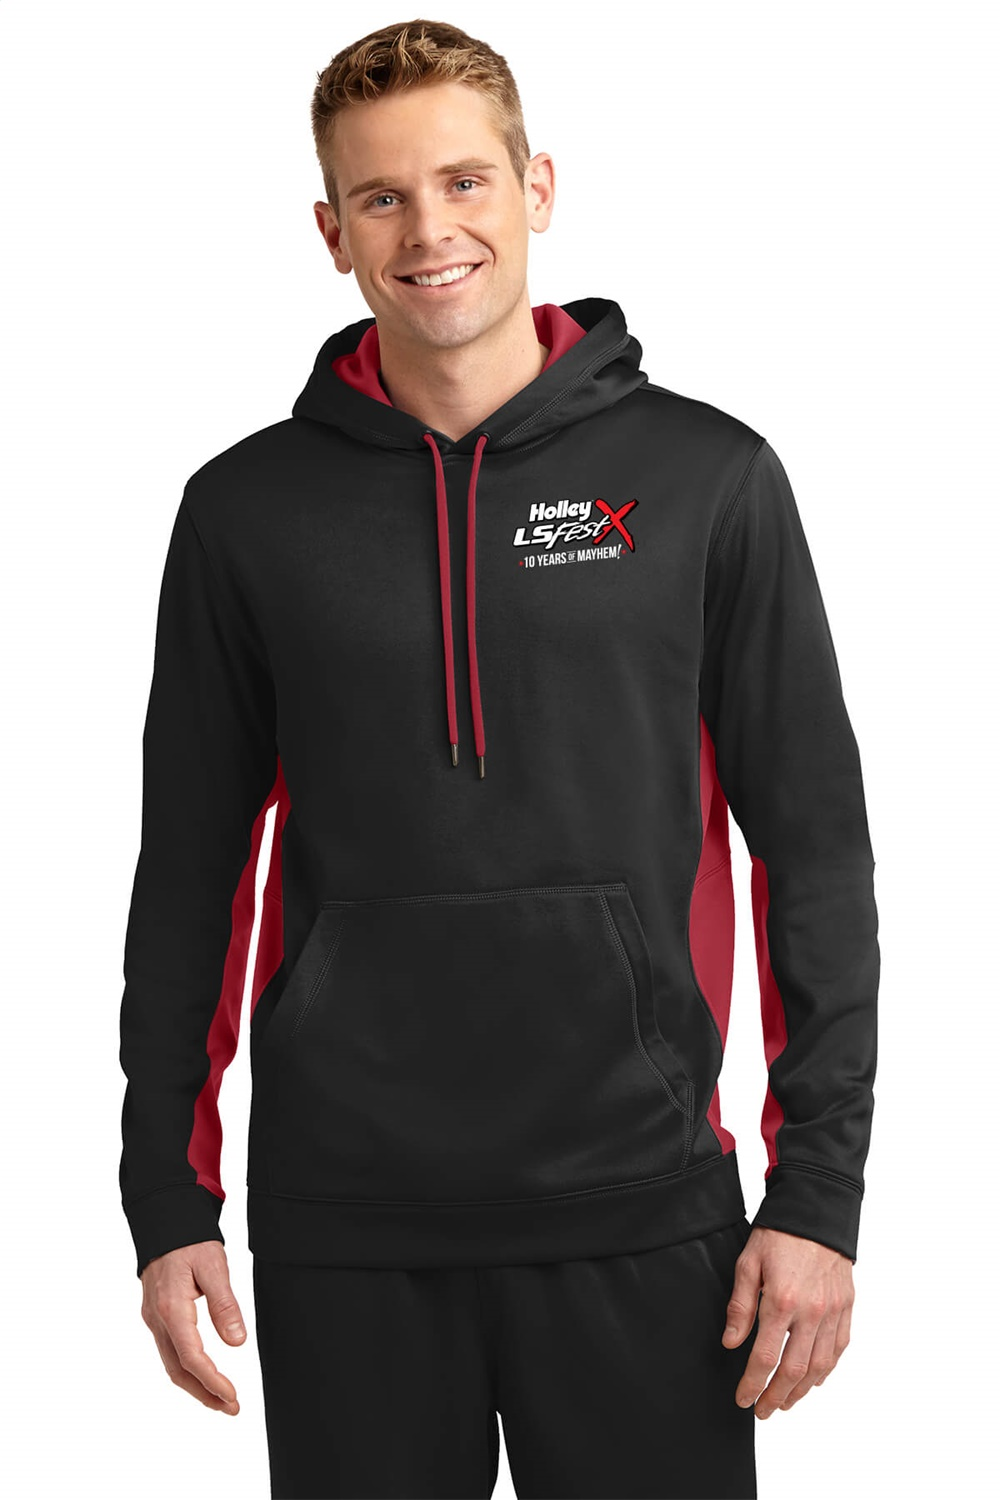 Holley Performance 10223-MDHOL Holley LS Fest 10 Year Anniversary Event Hoodie